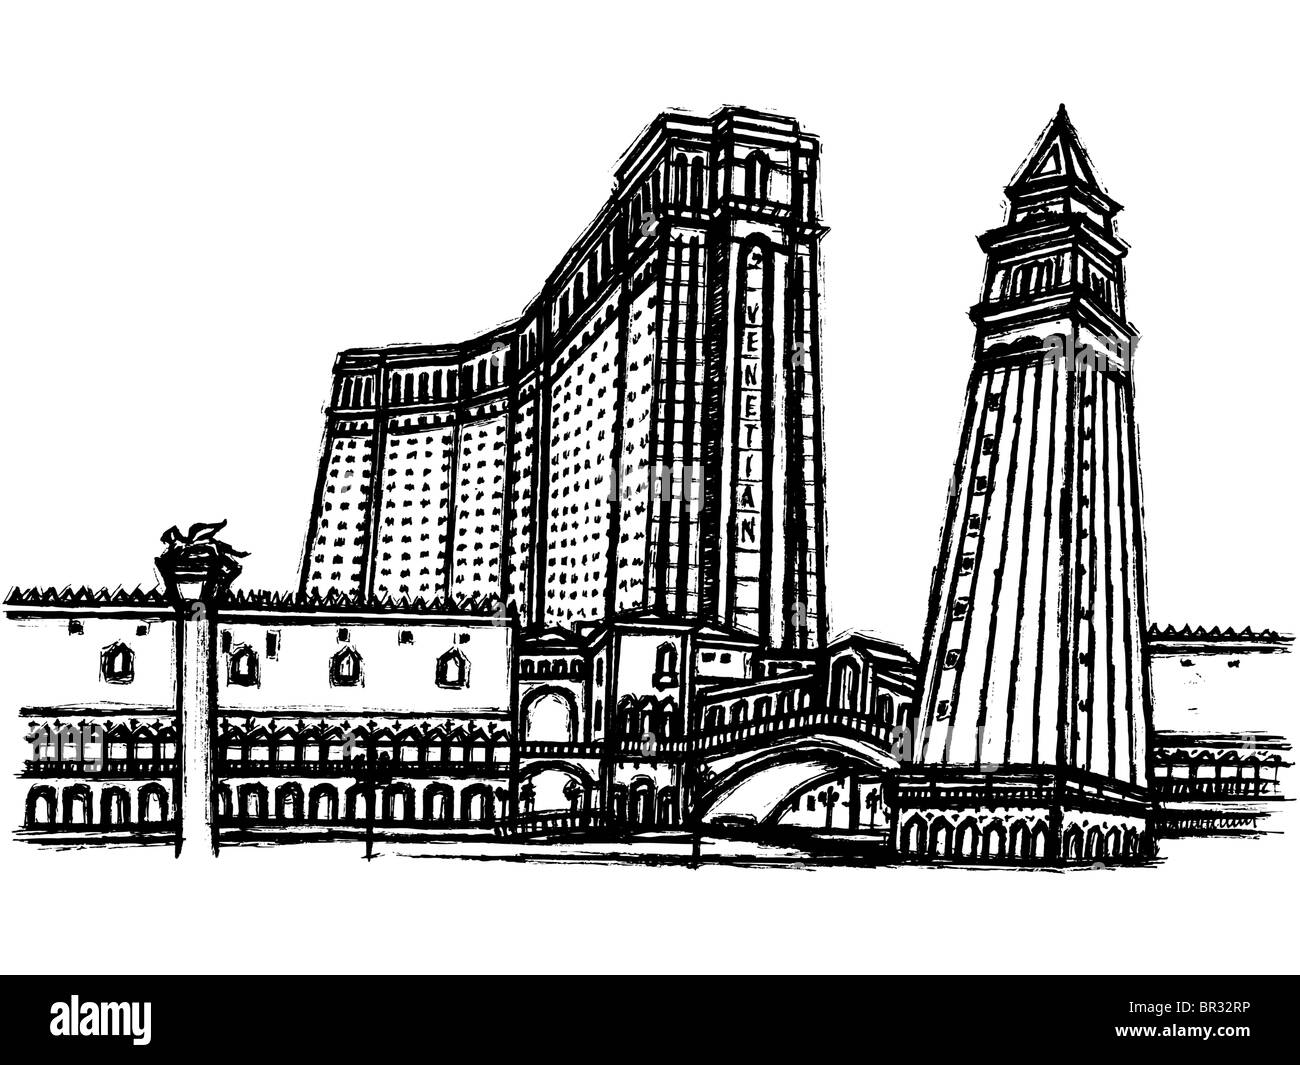 A black and white illustration of The Venetian hotel with its tower - Stock Image